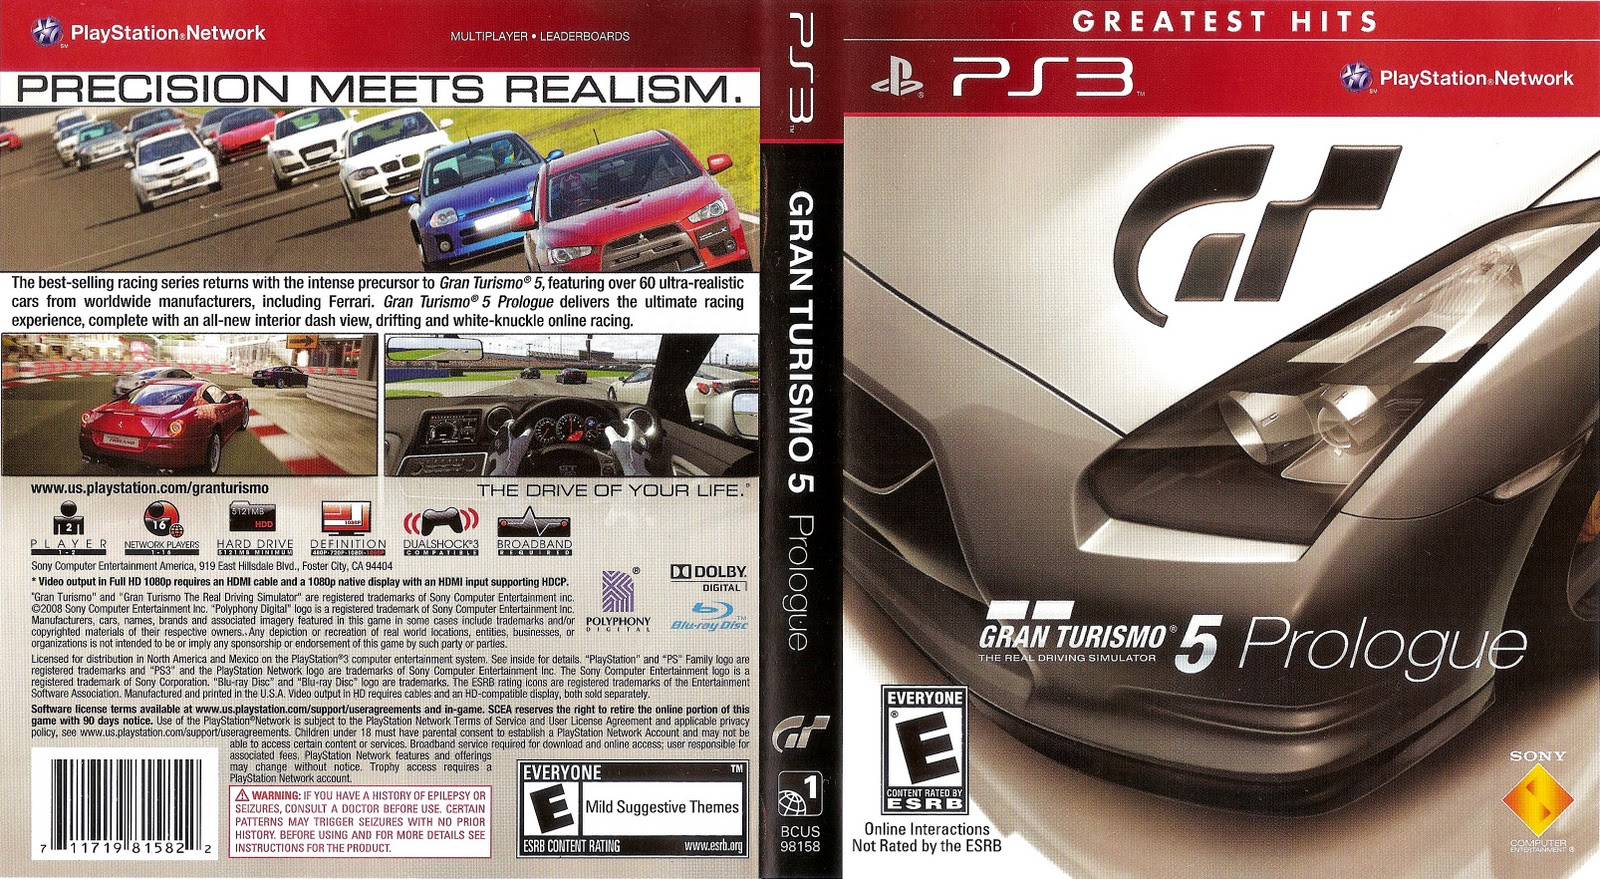 gran turismo 5 prologue greatest hits playstation ps3. Black Bedroom Furniture Sets. Home Design Ideas